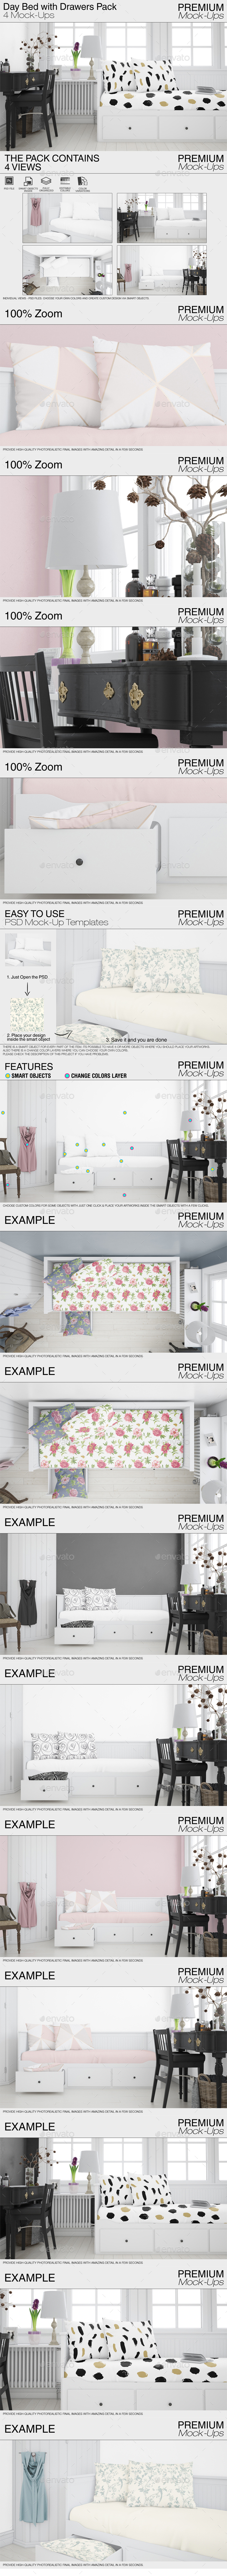 GraphicRiver Day Bed with Drawers Set 21021279